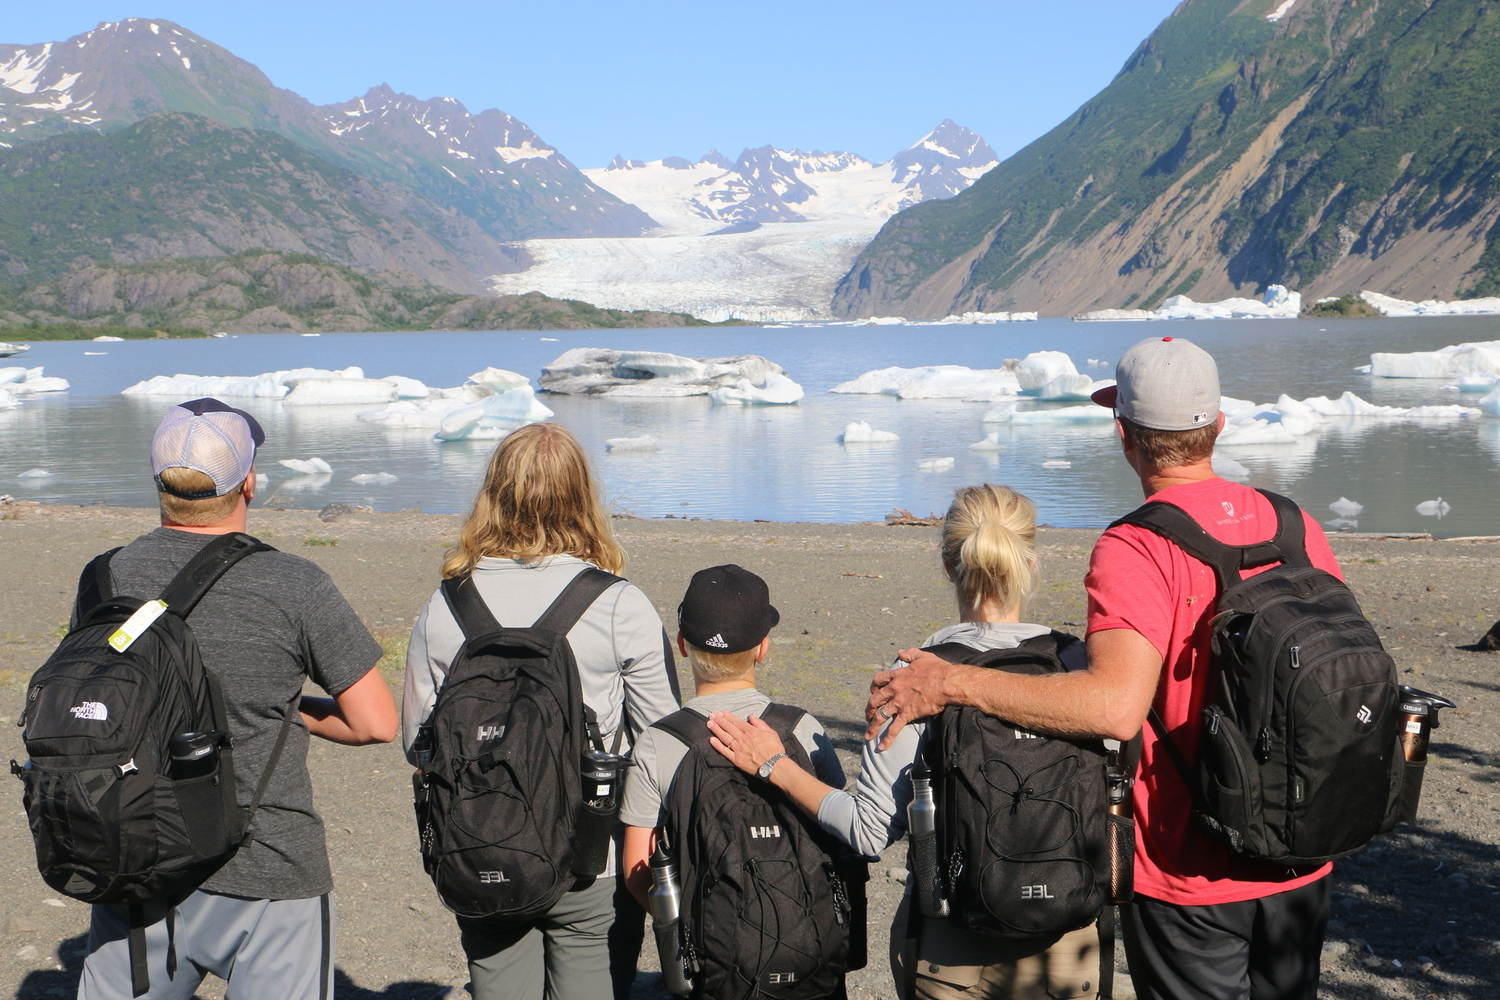 Family looking at icebergs in Alaska lake